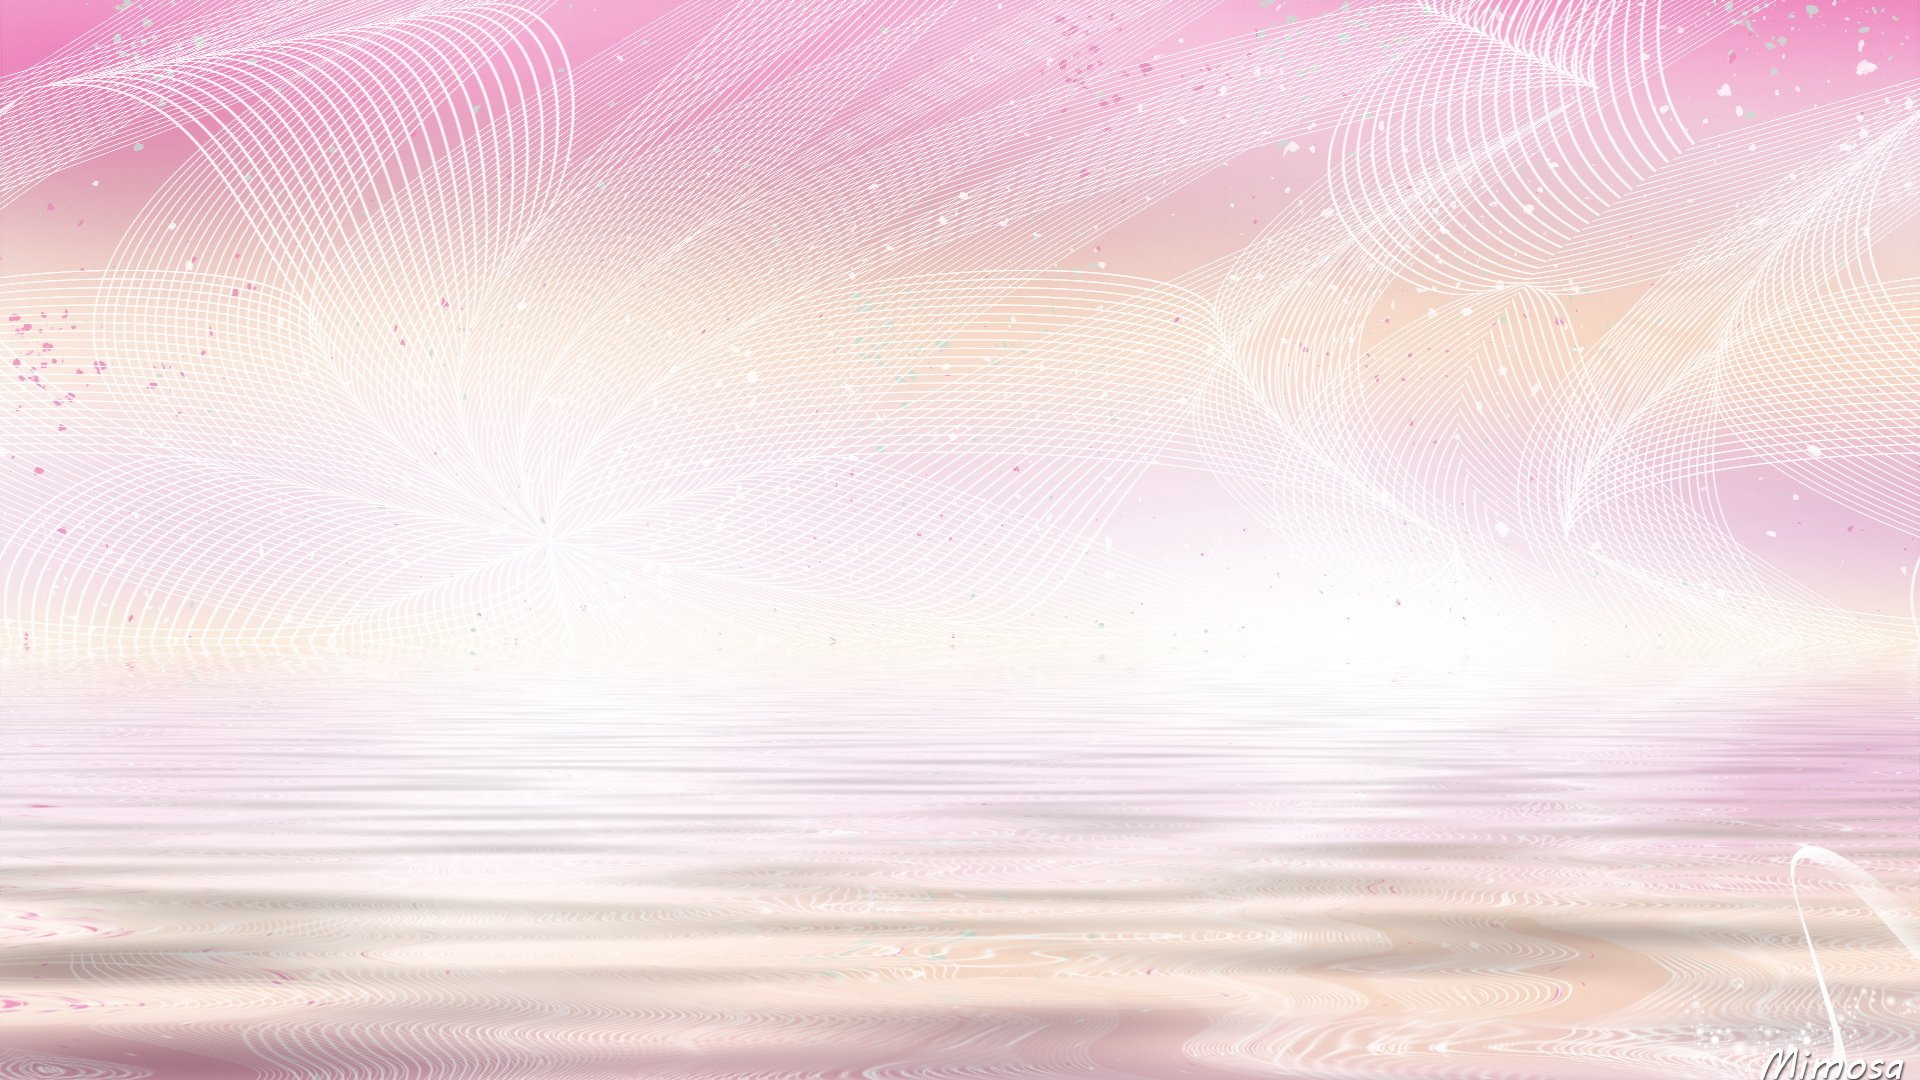 Wallpapers ID:985176